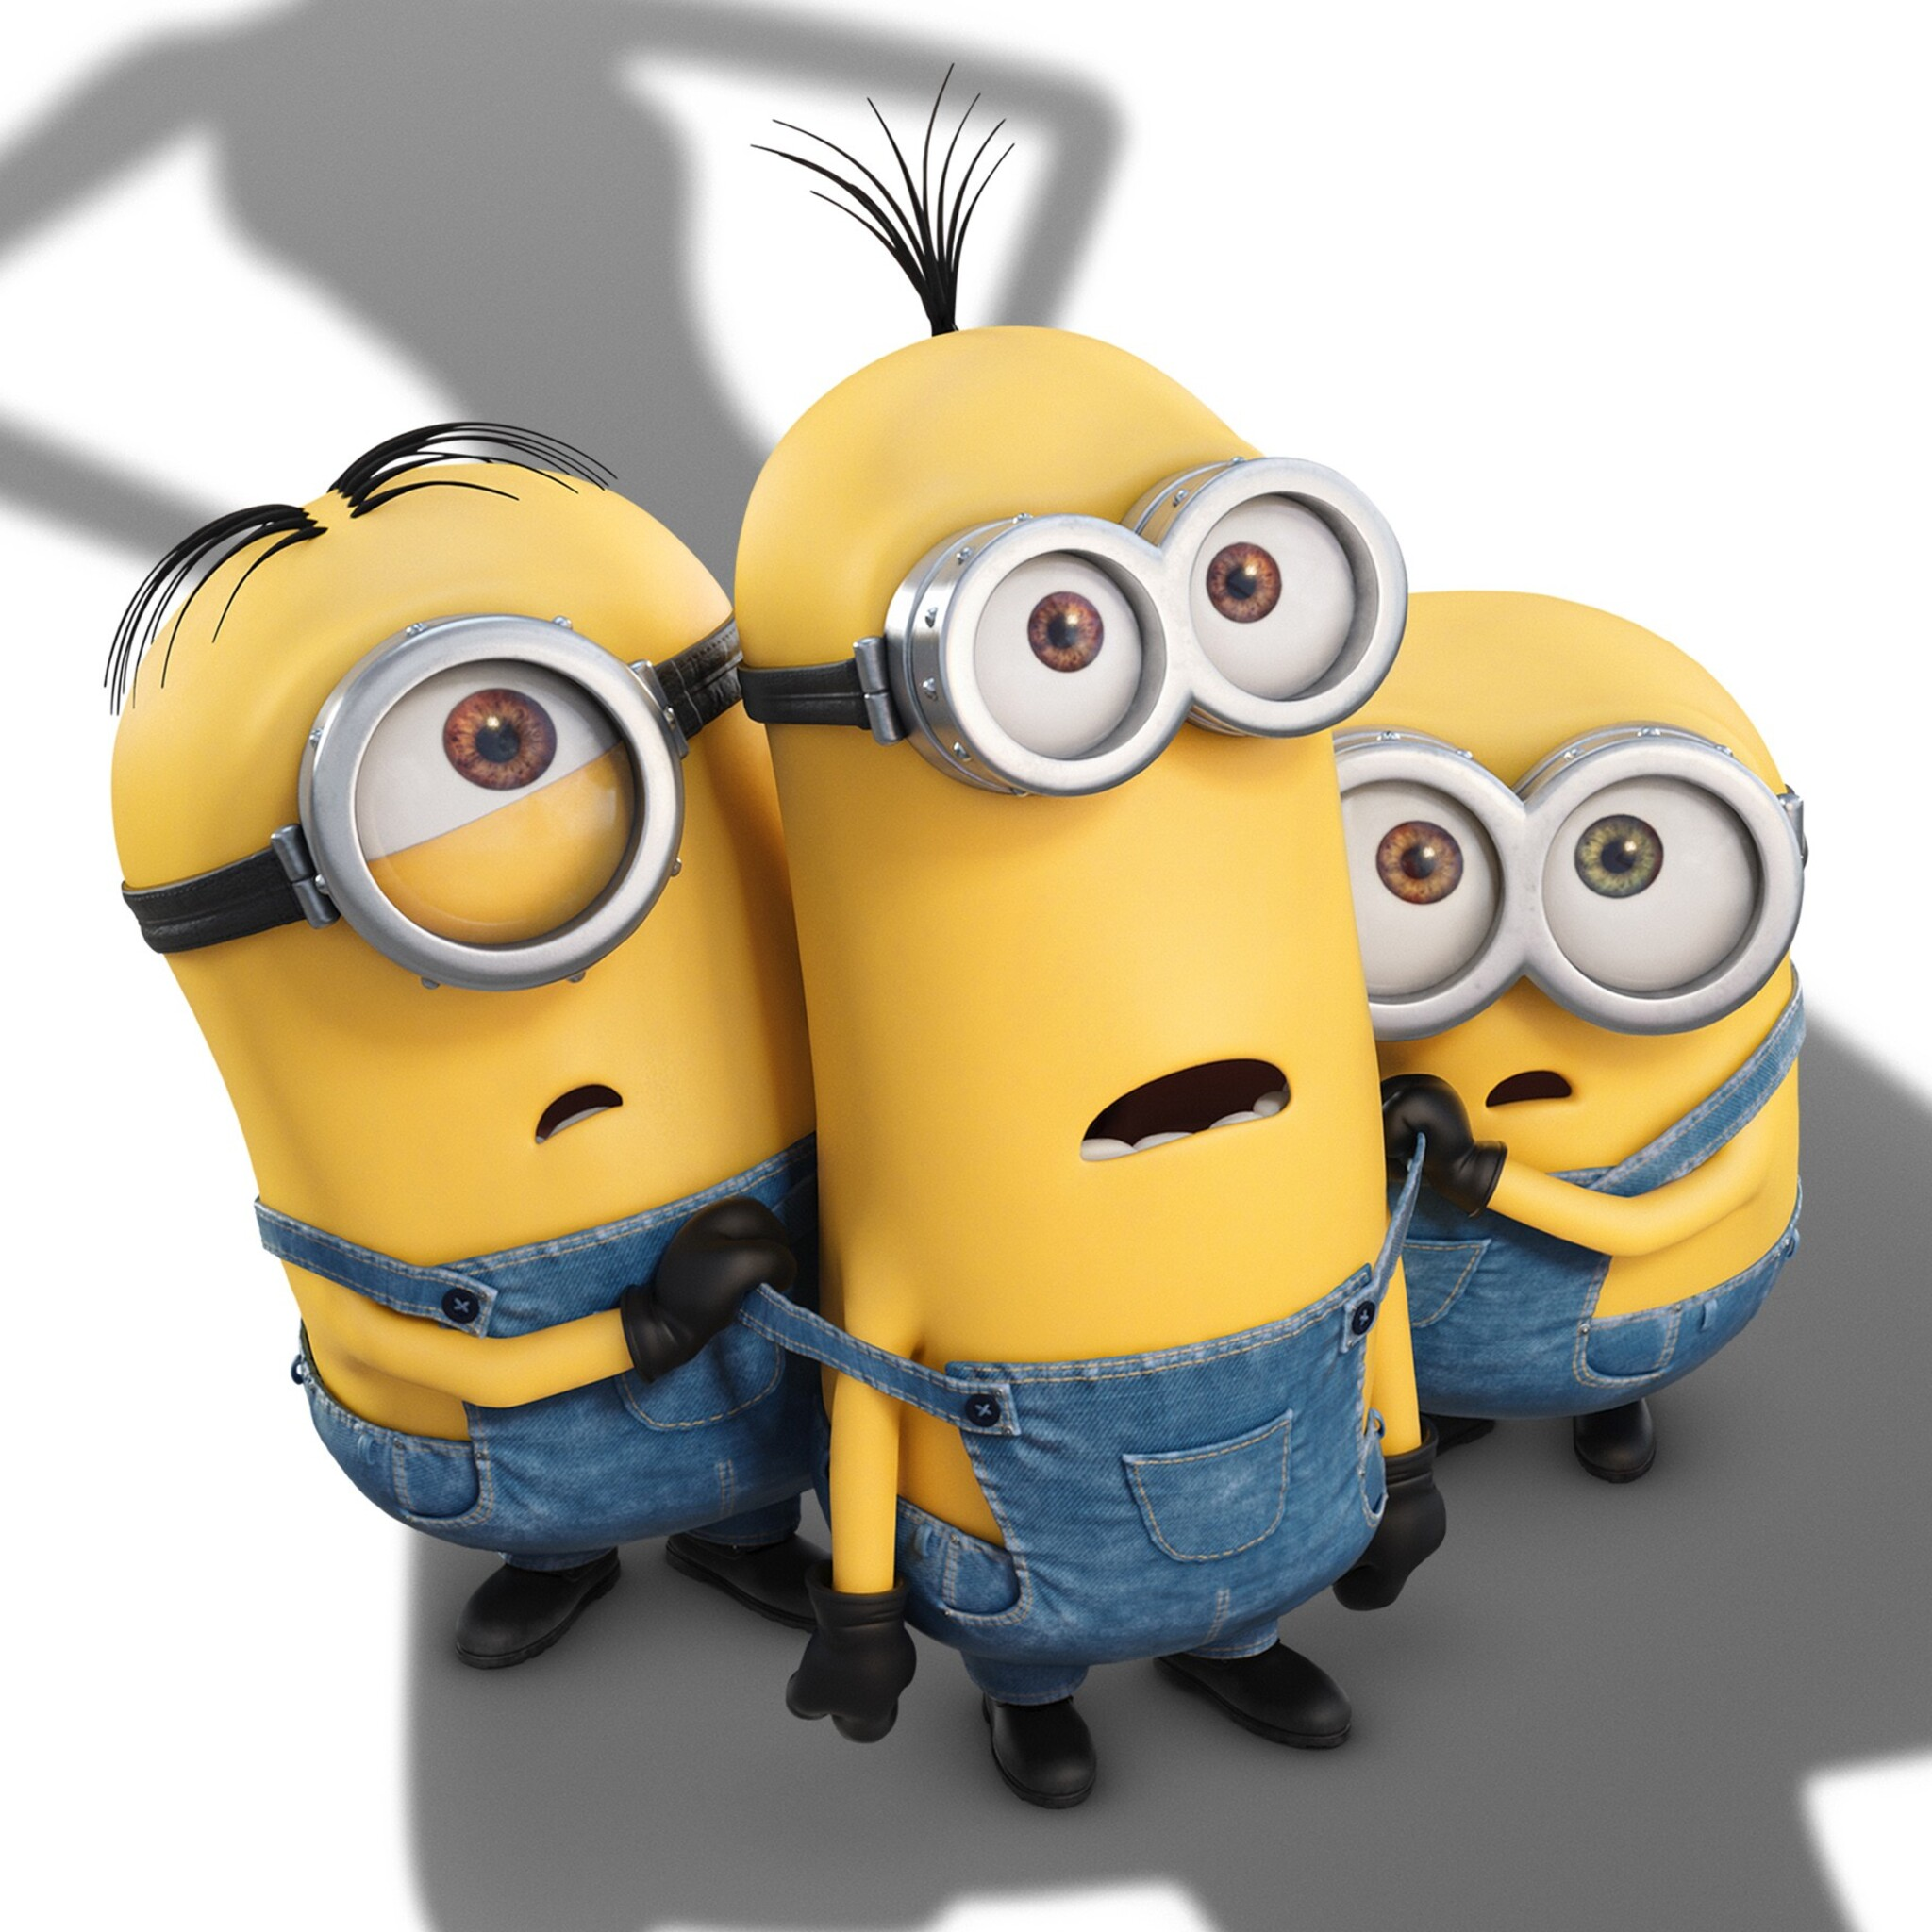 2048x2048 cute minions ipad air hd 4k wallpapers, images